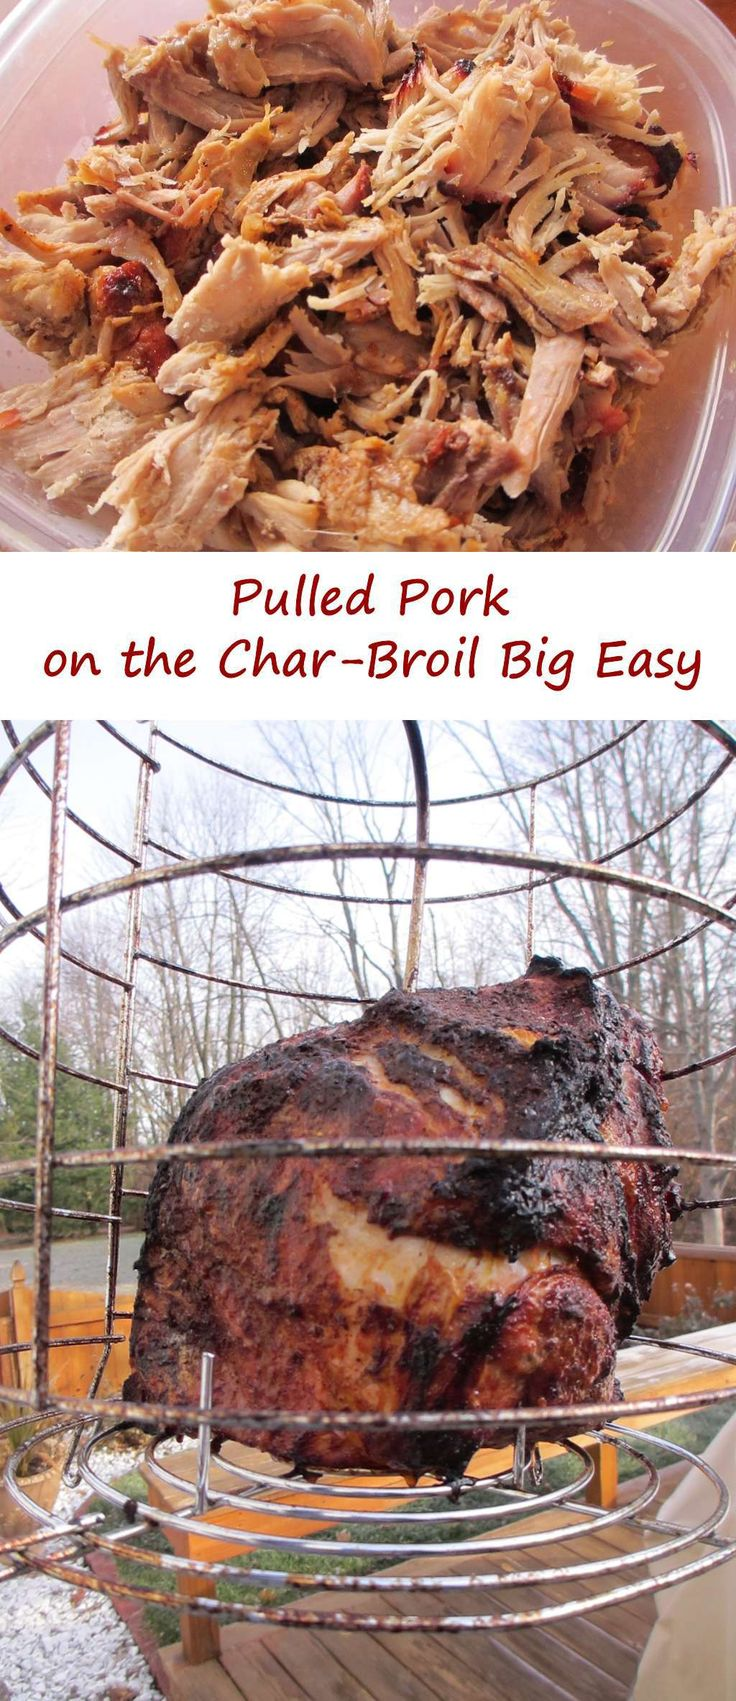 Pulled Pork on the Char-Broil Big Easy